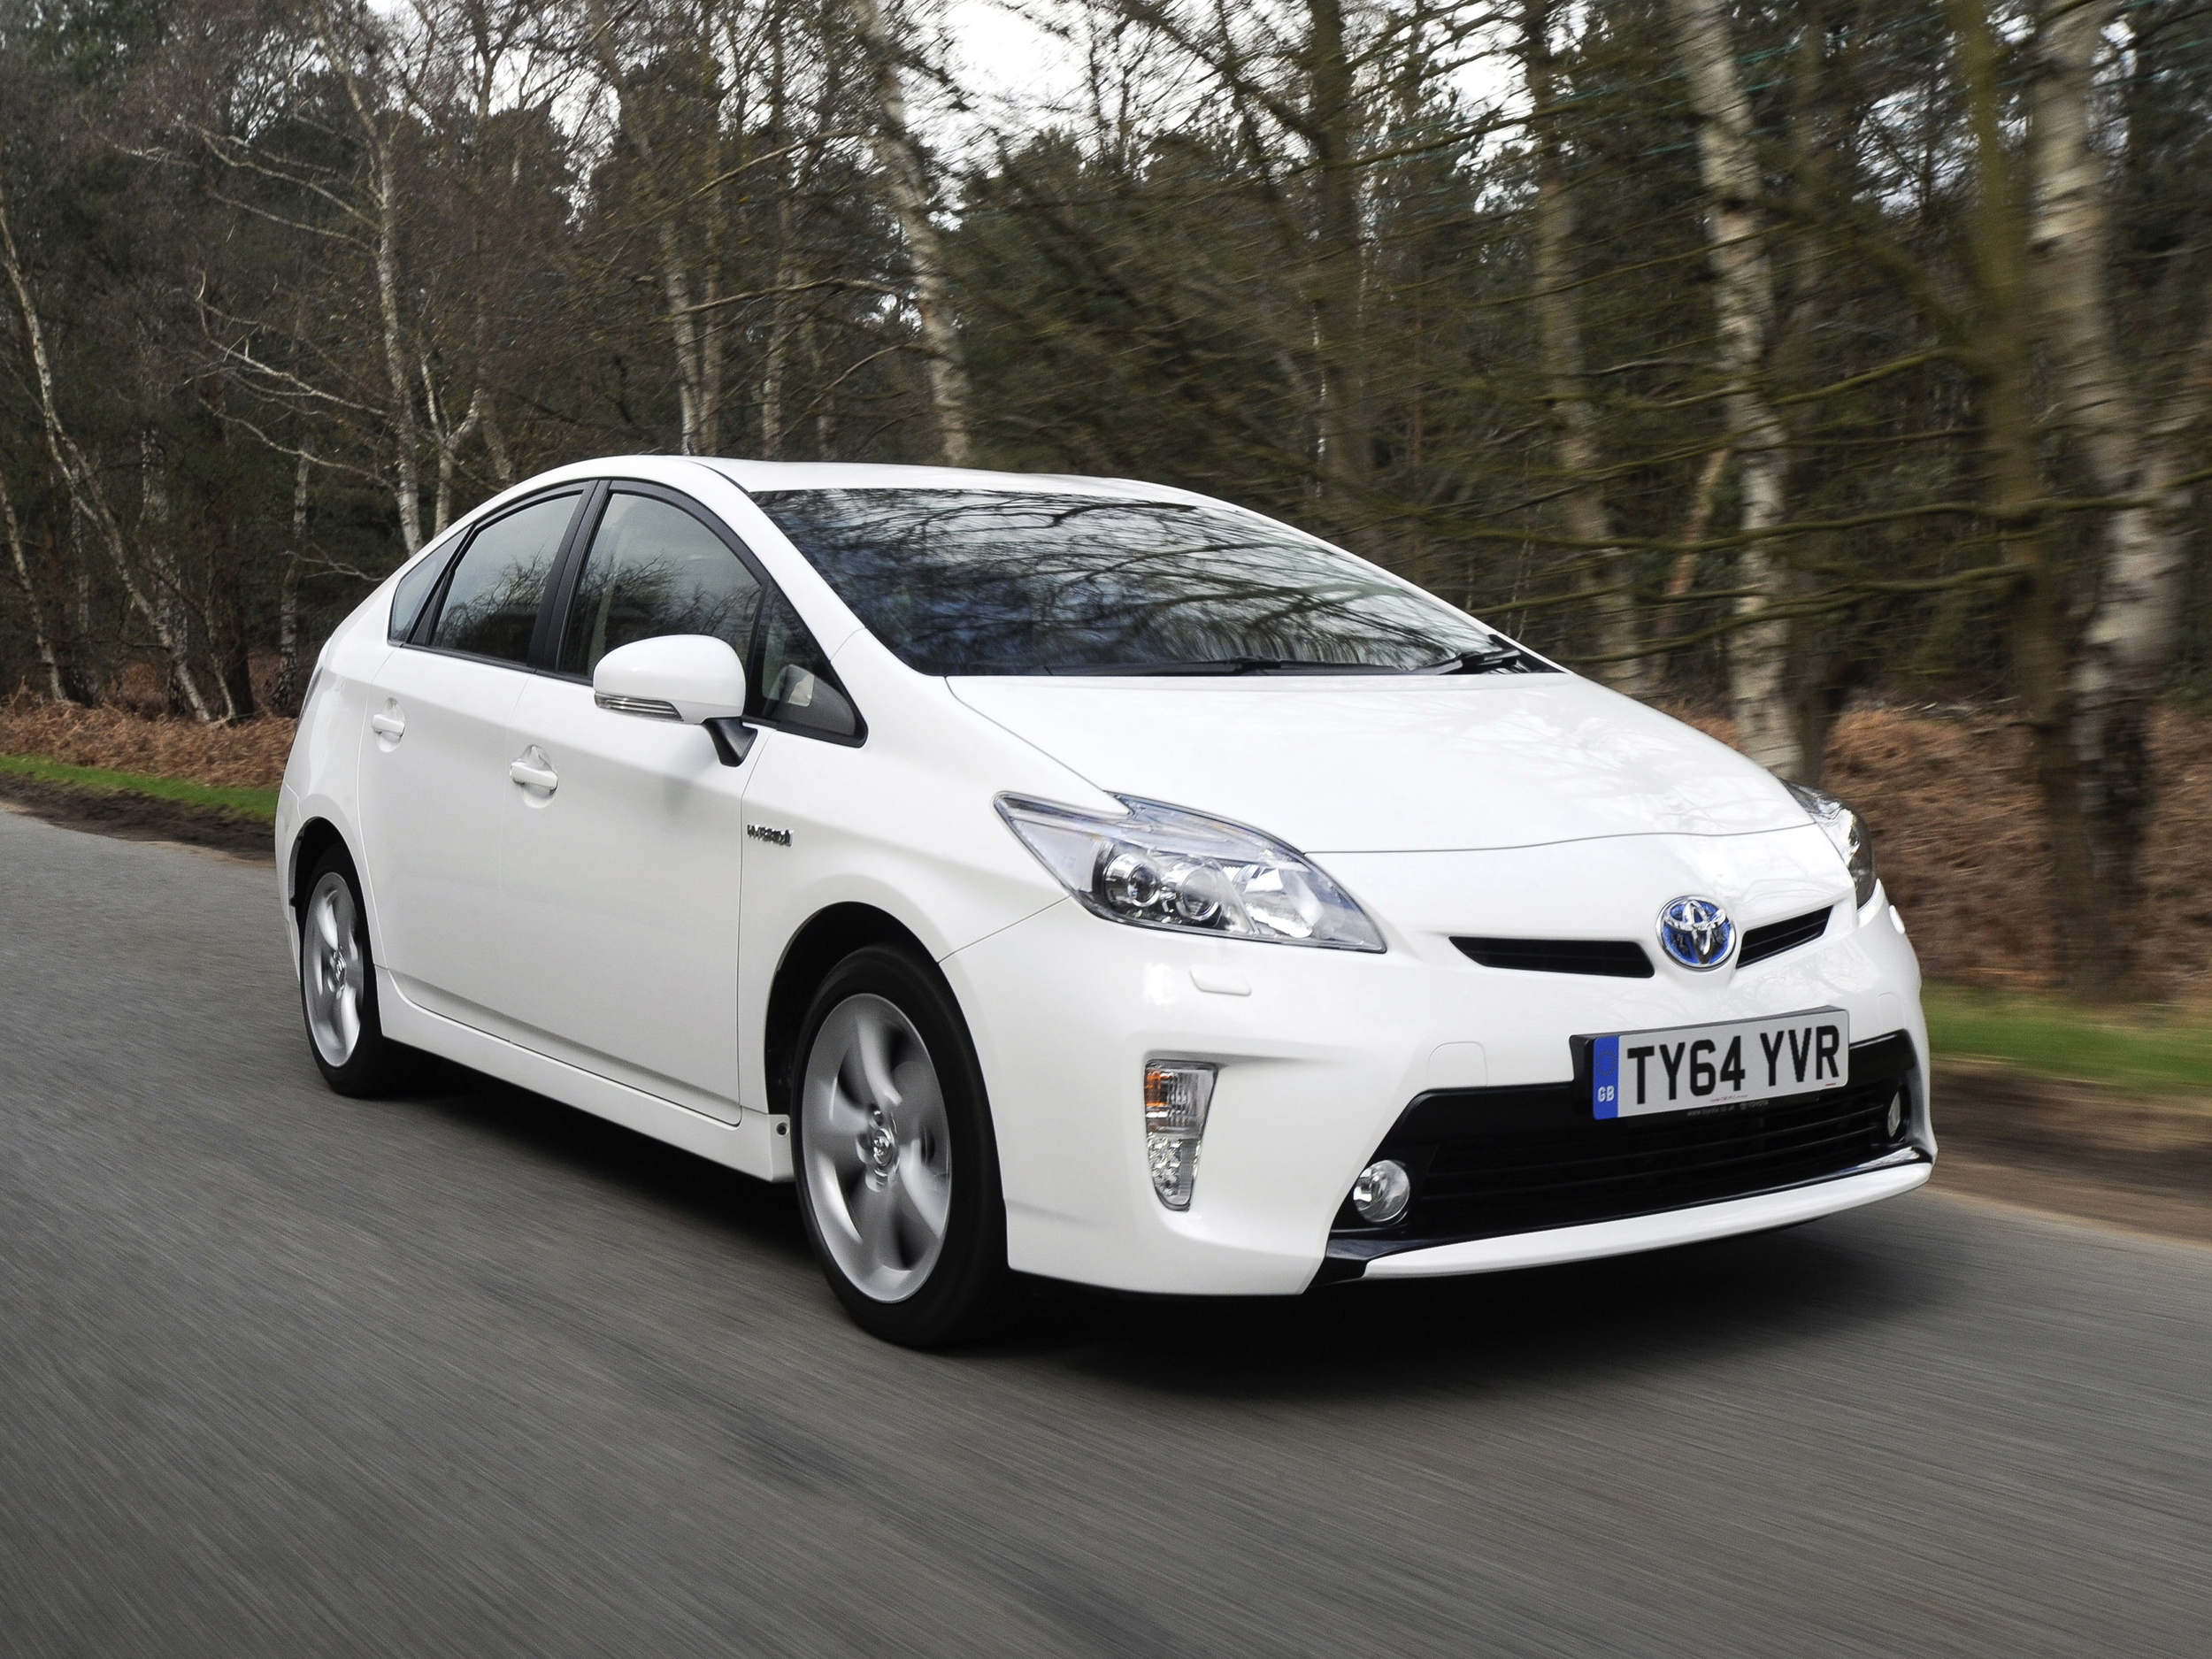 Hybrid technology proves its staying power with eight million global vehicle sales